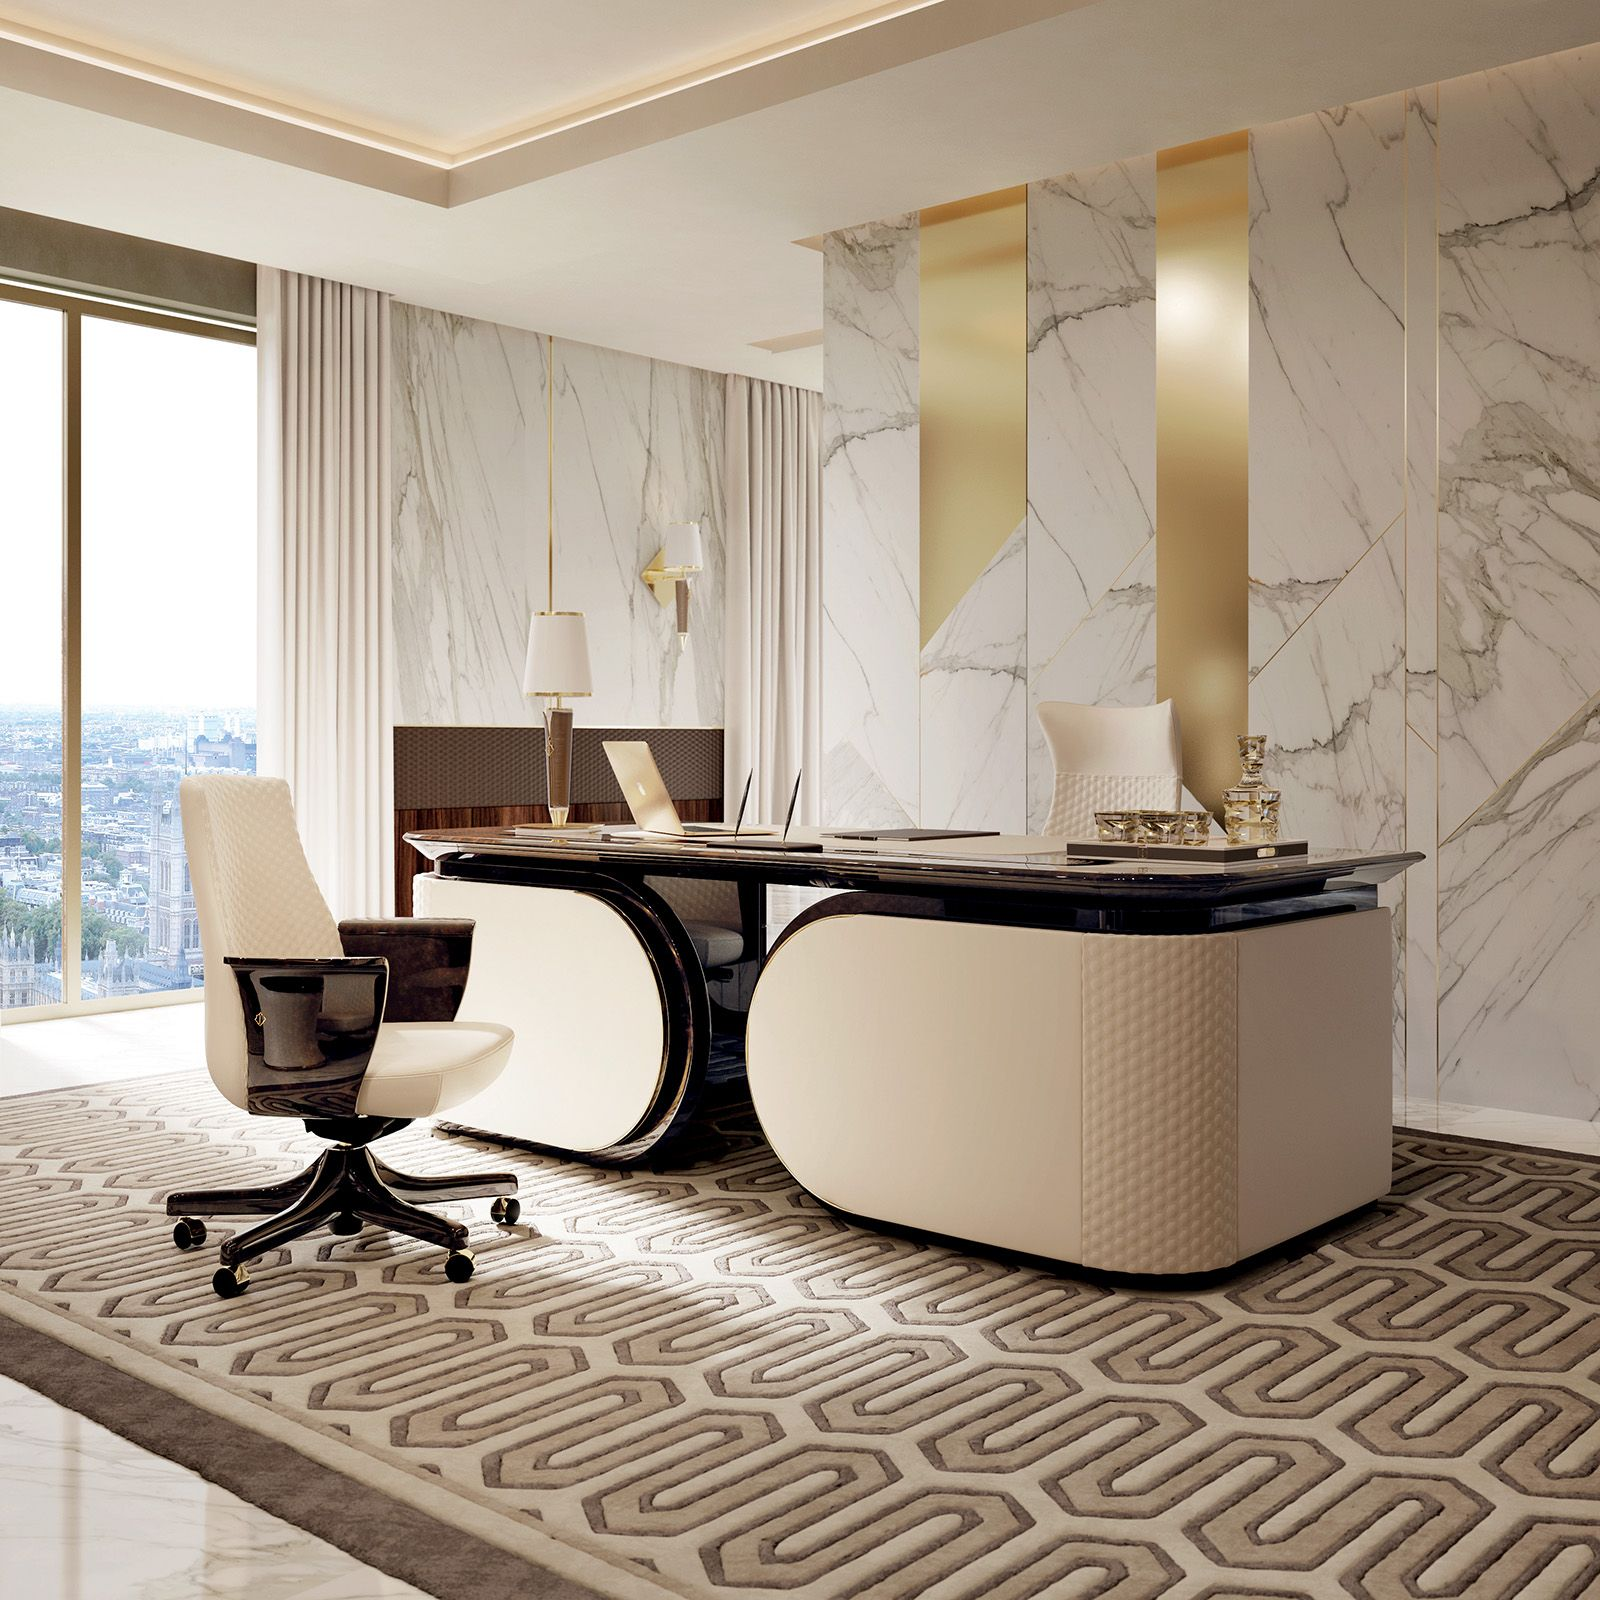 Vogue collection italian luxury office desk for Upscale home office furniture